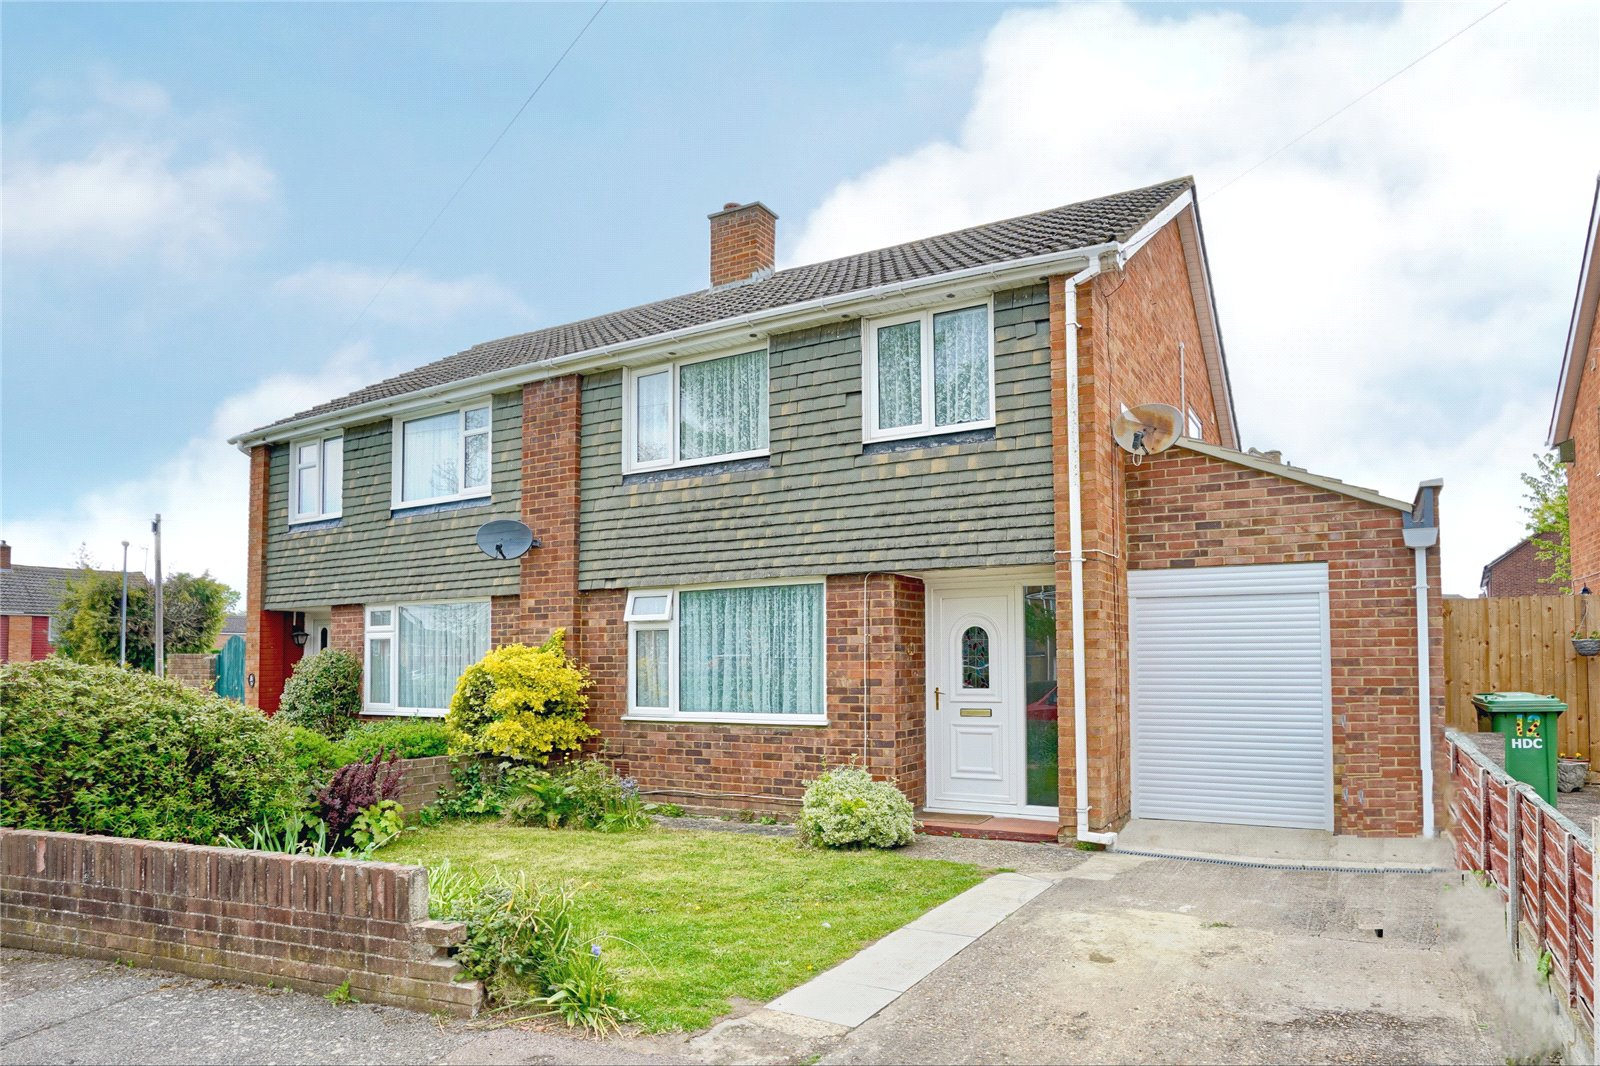 3 bed house for sale in Acacia Grove, St. Neots, PE19